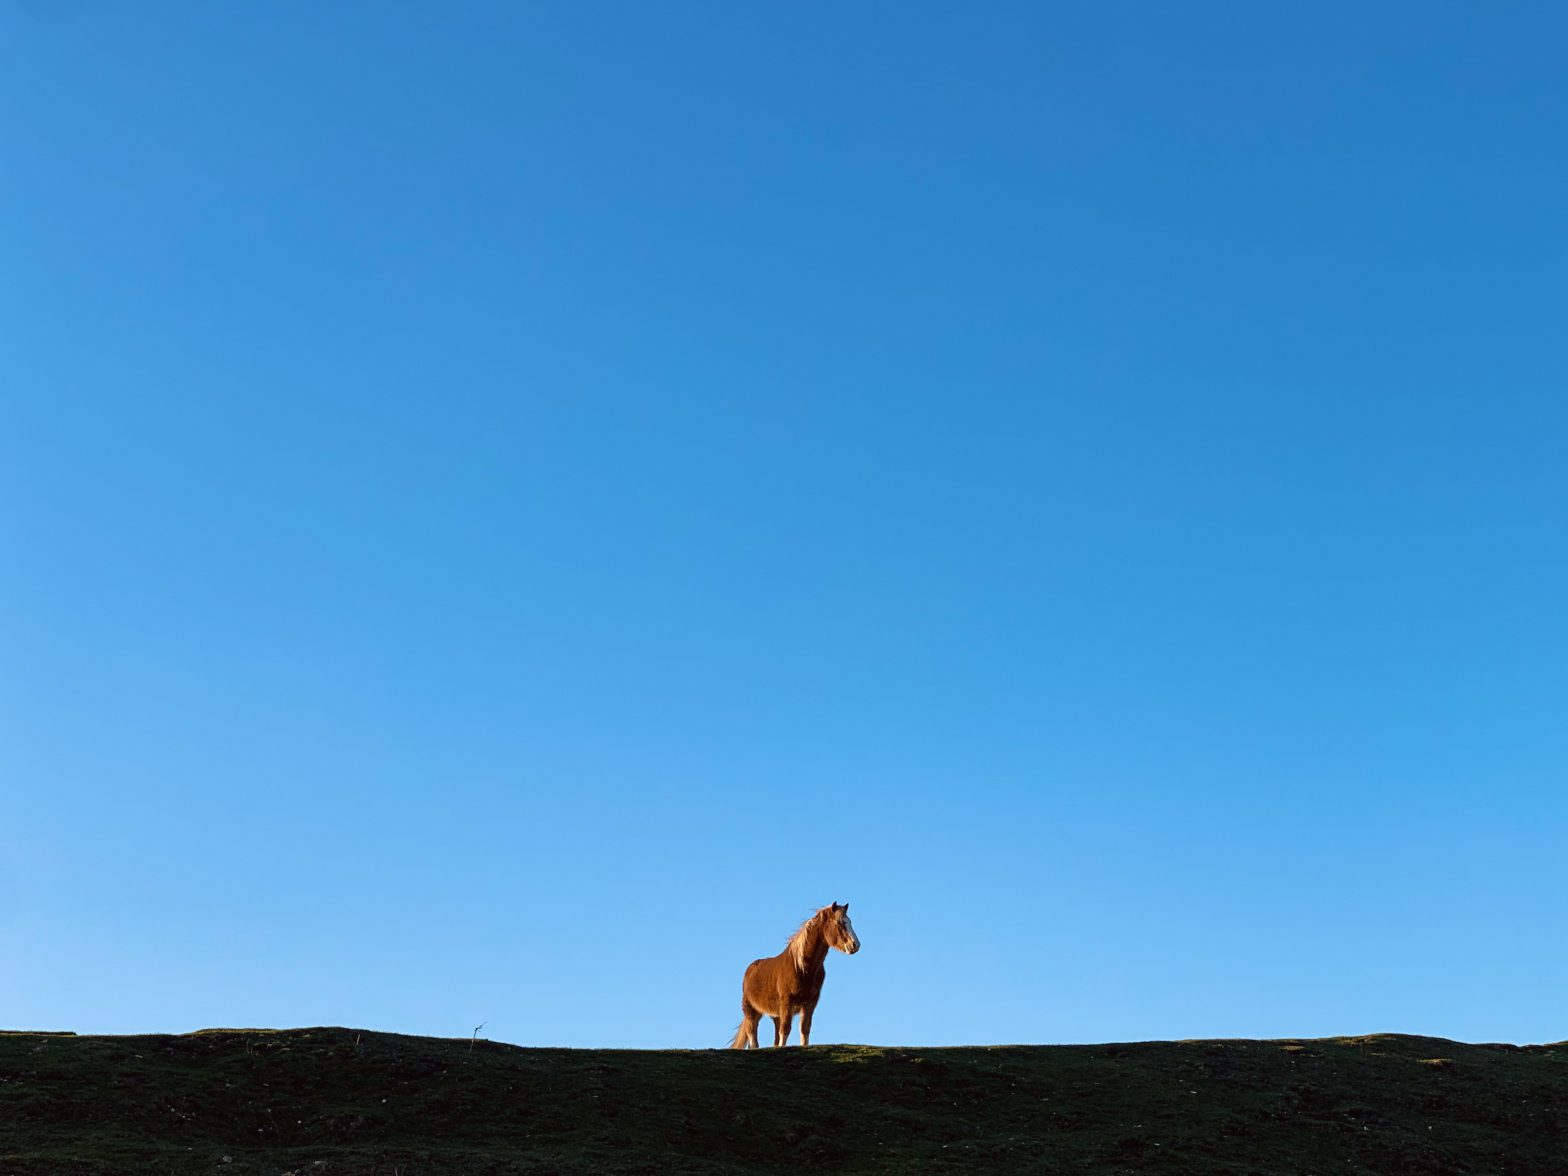 Brown horse agains a backdrop of blue sky